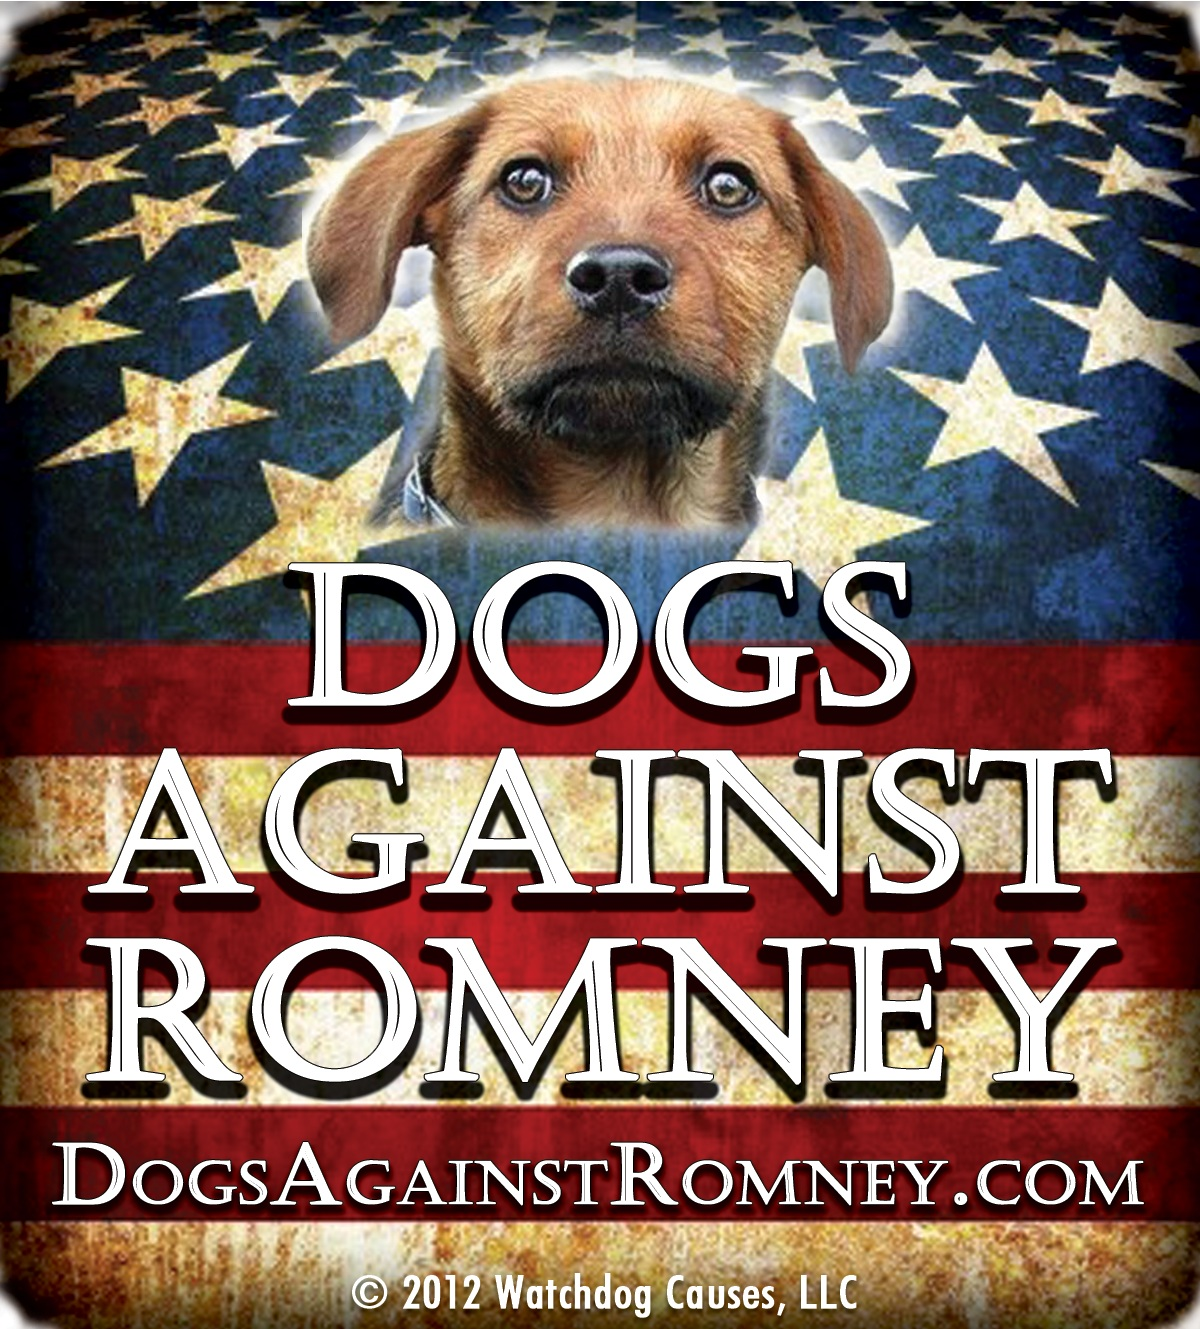 Mitt Romneys dog